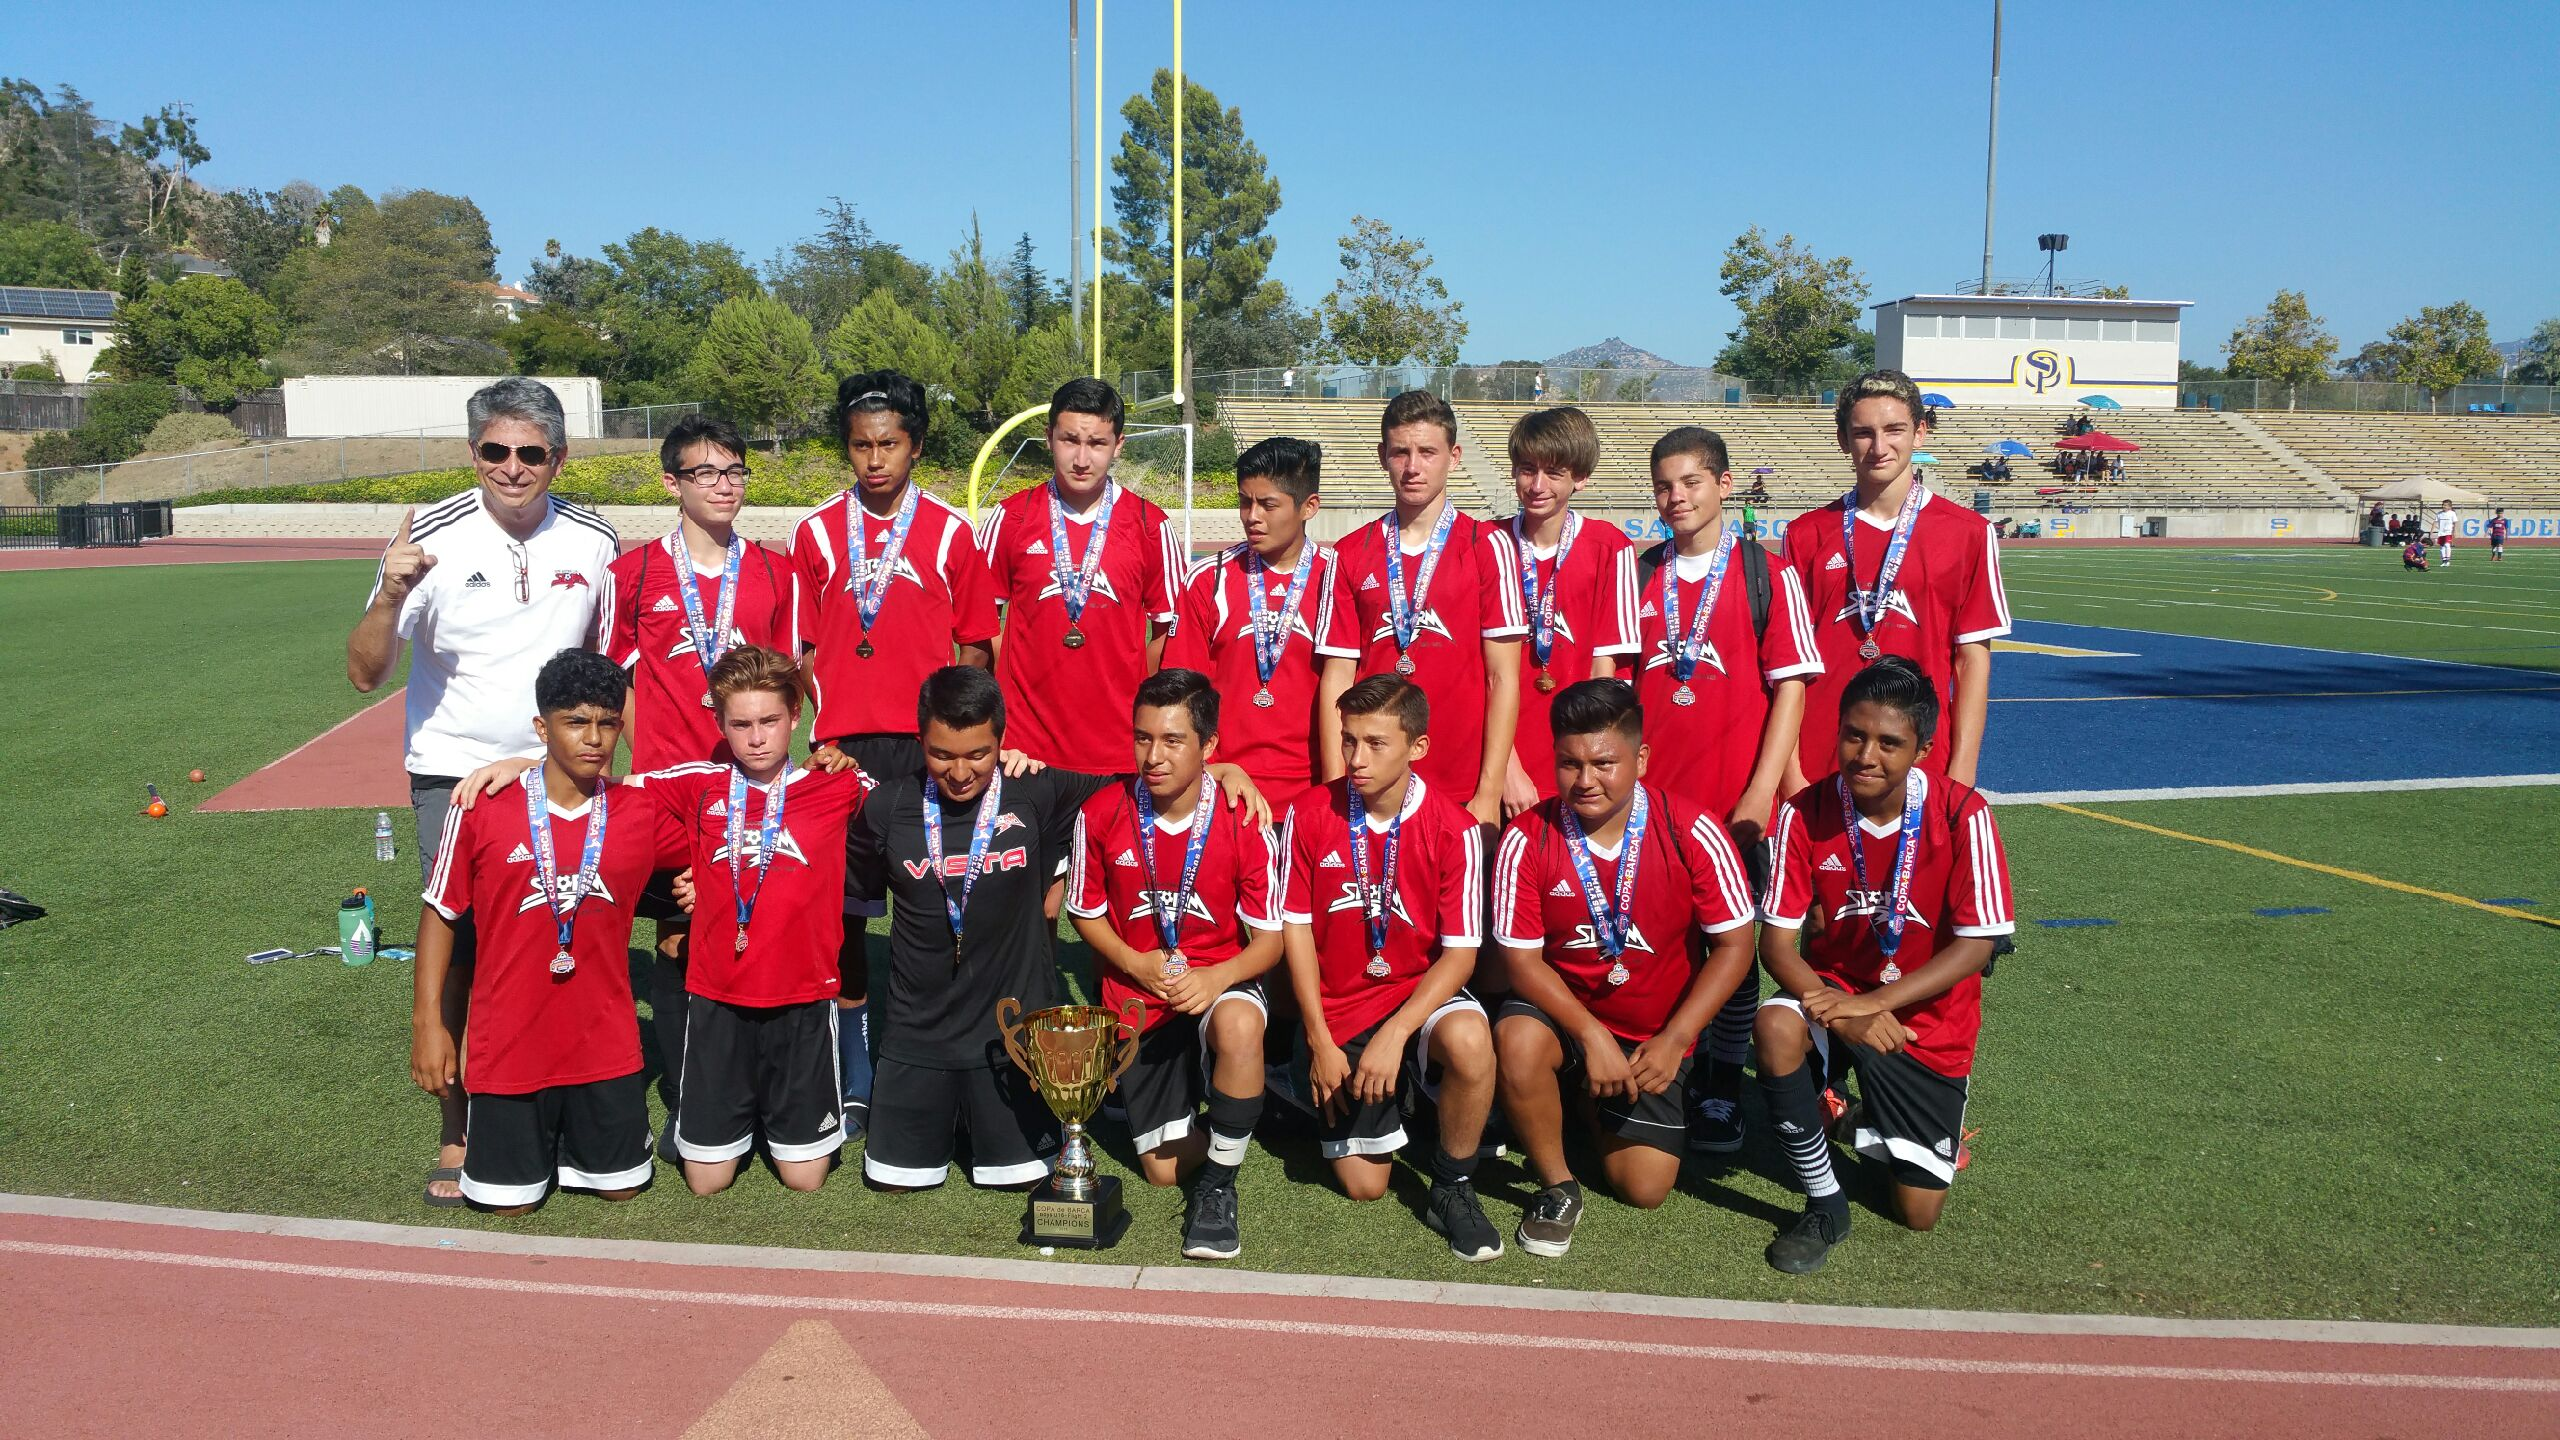 B2001 Black Wins Copa de Barca